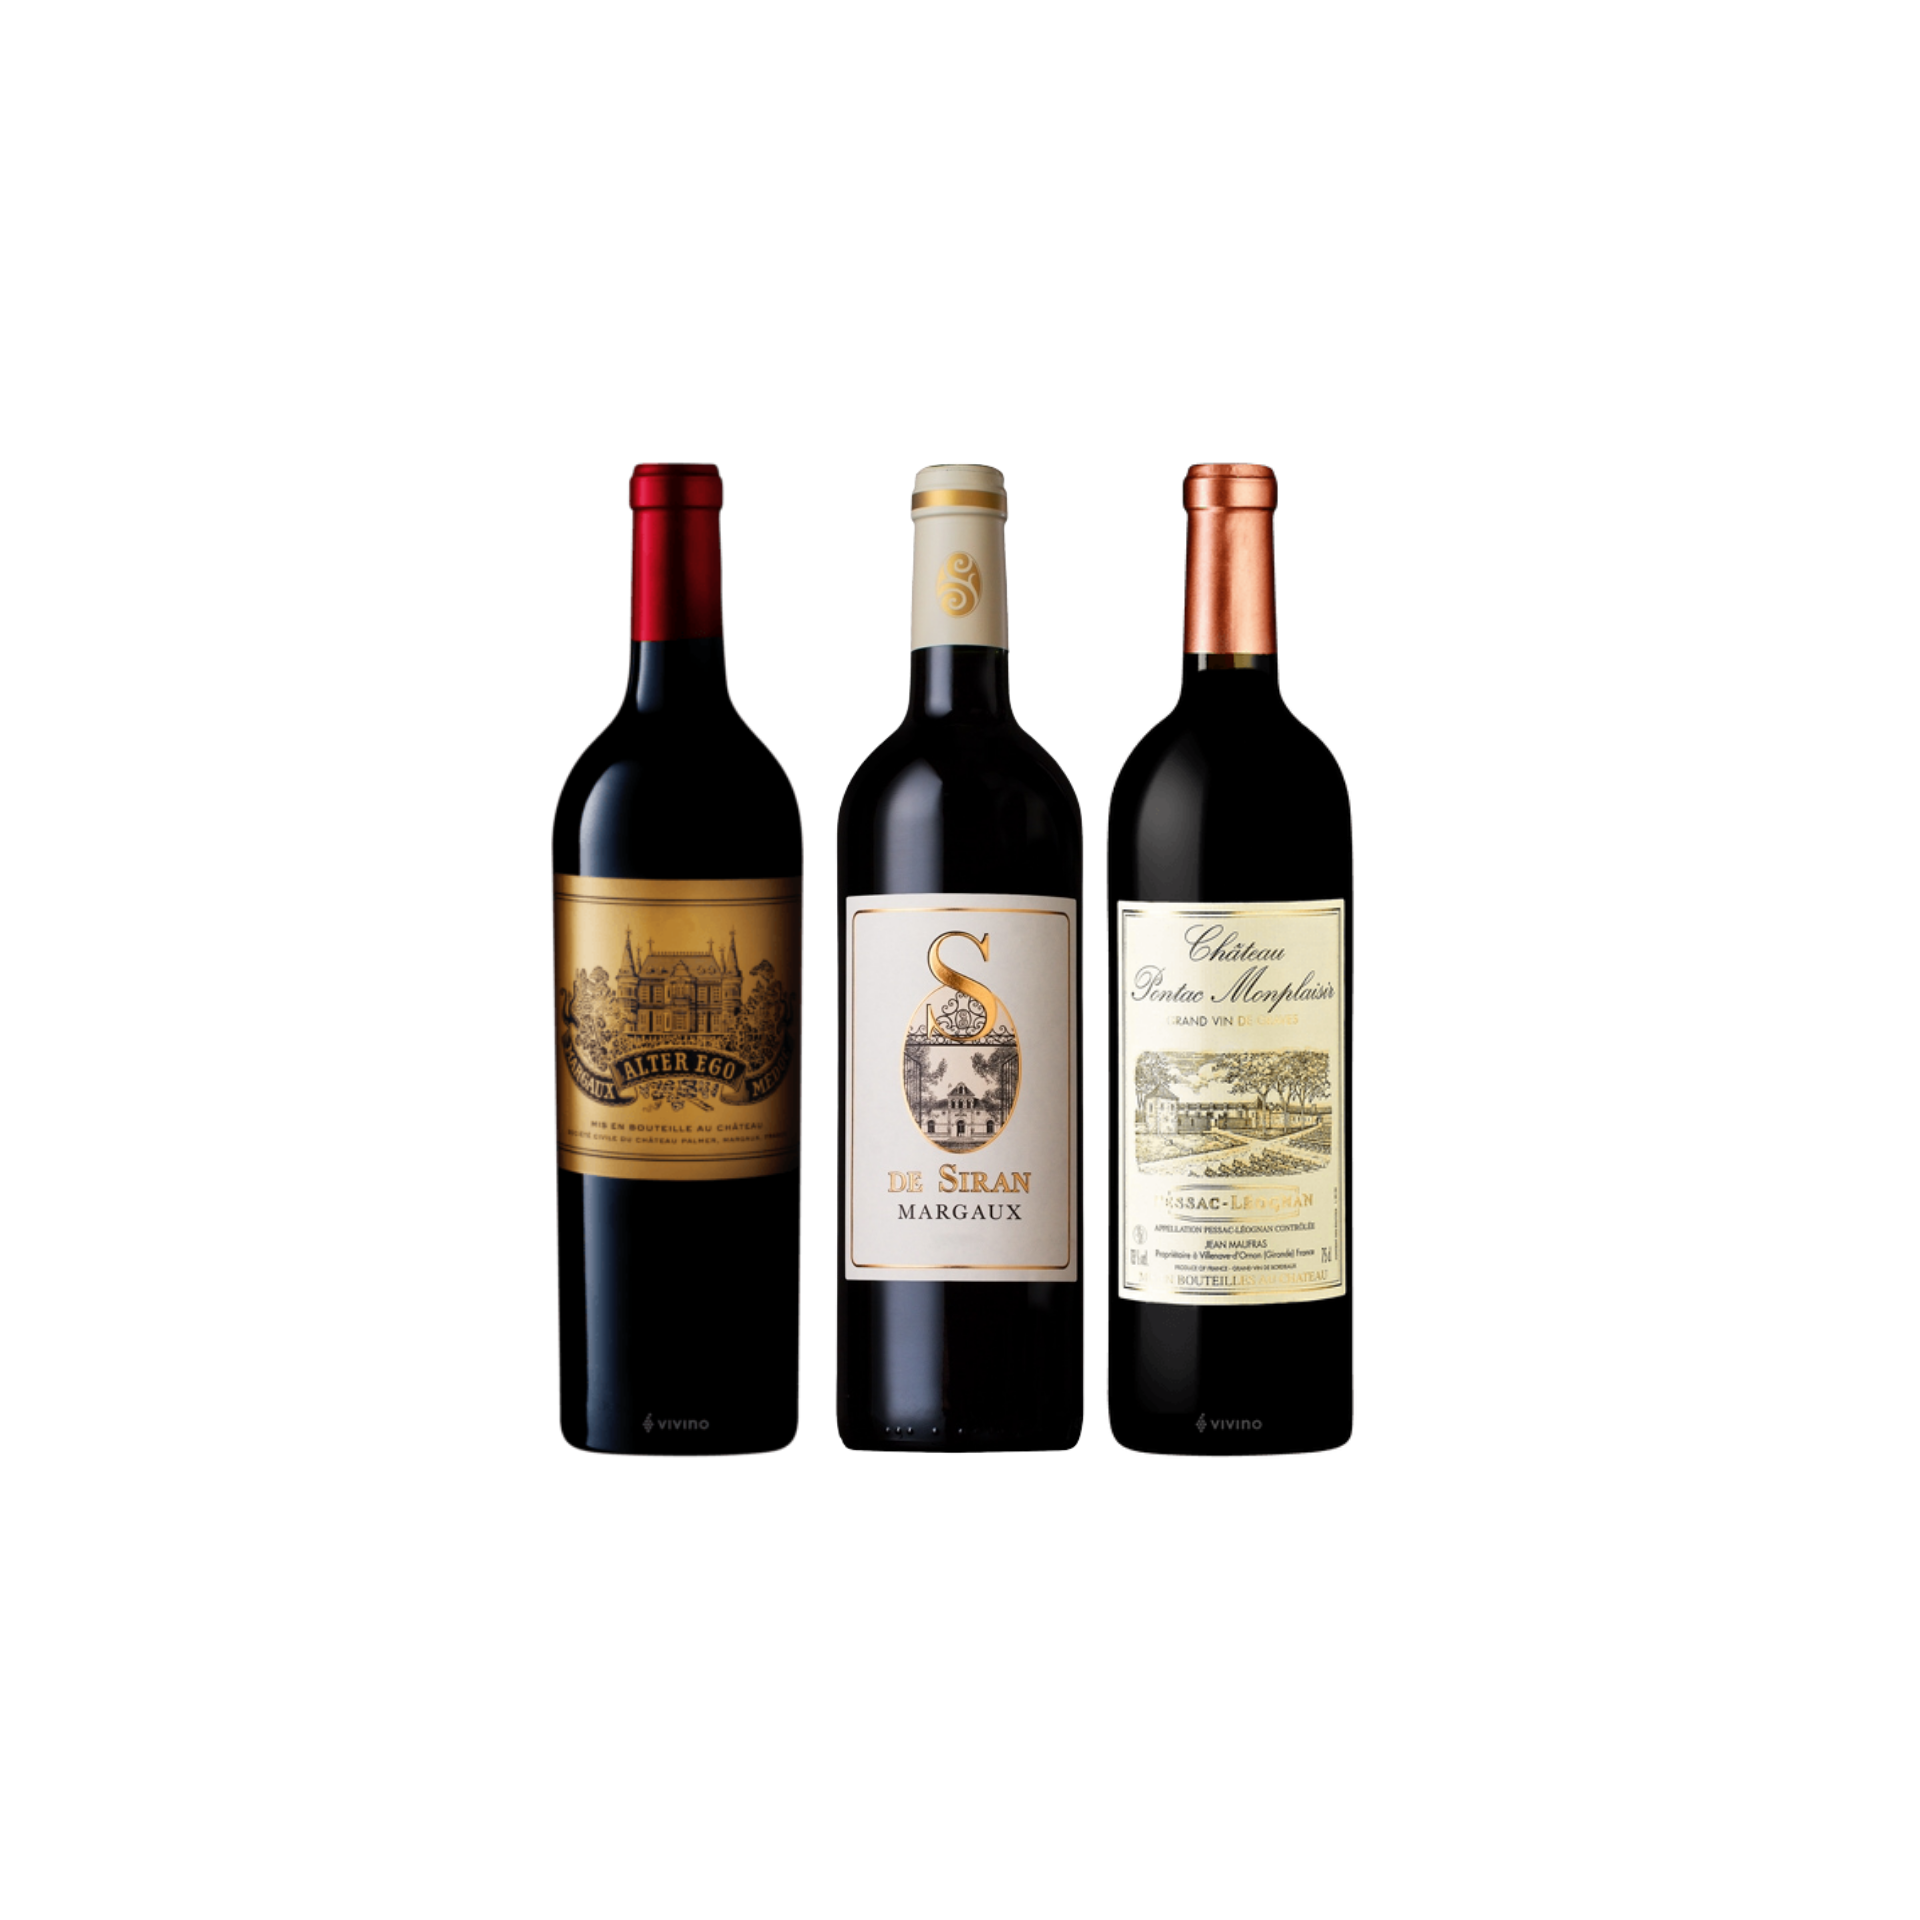 Enjoy 3 Bottles of French Red Wine From Margaux and Pessac Leognan at Only $199